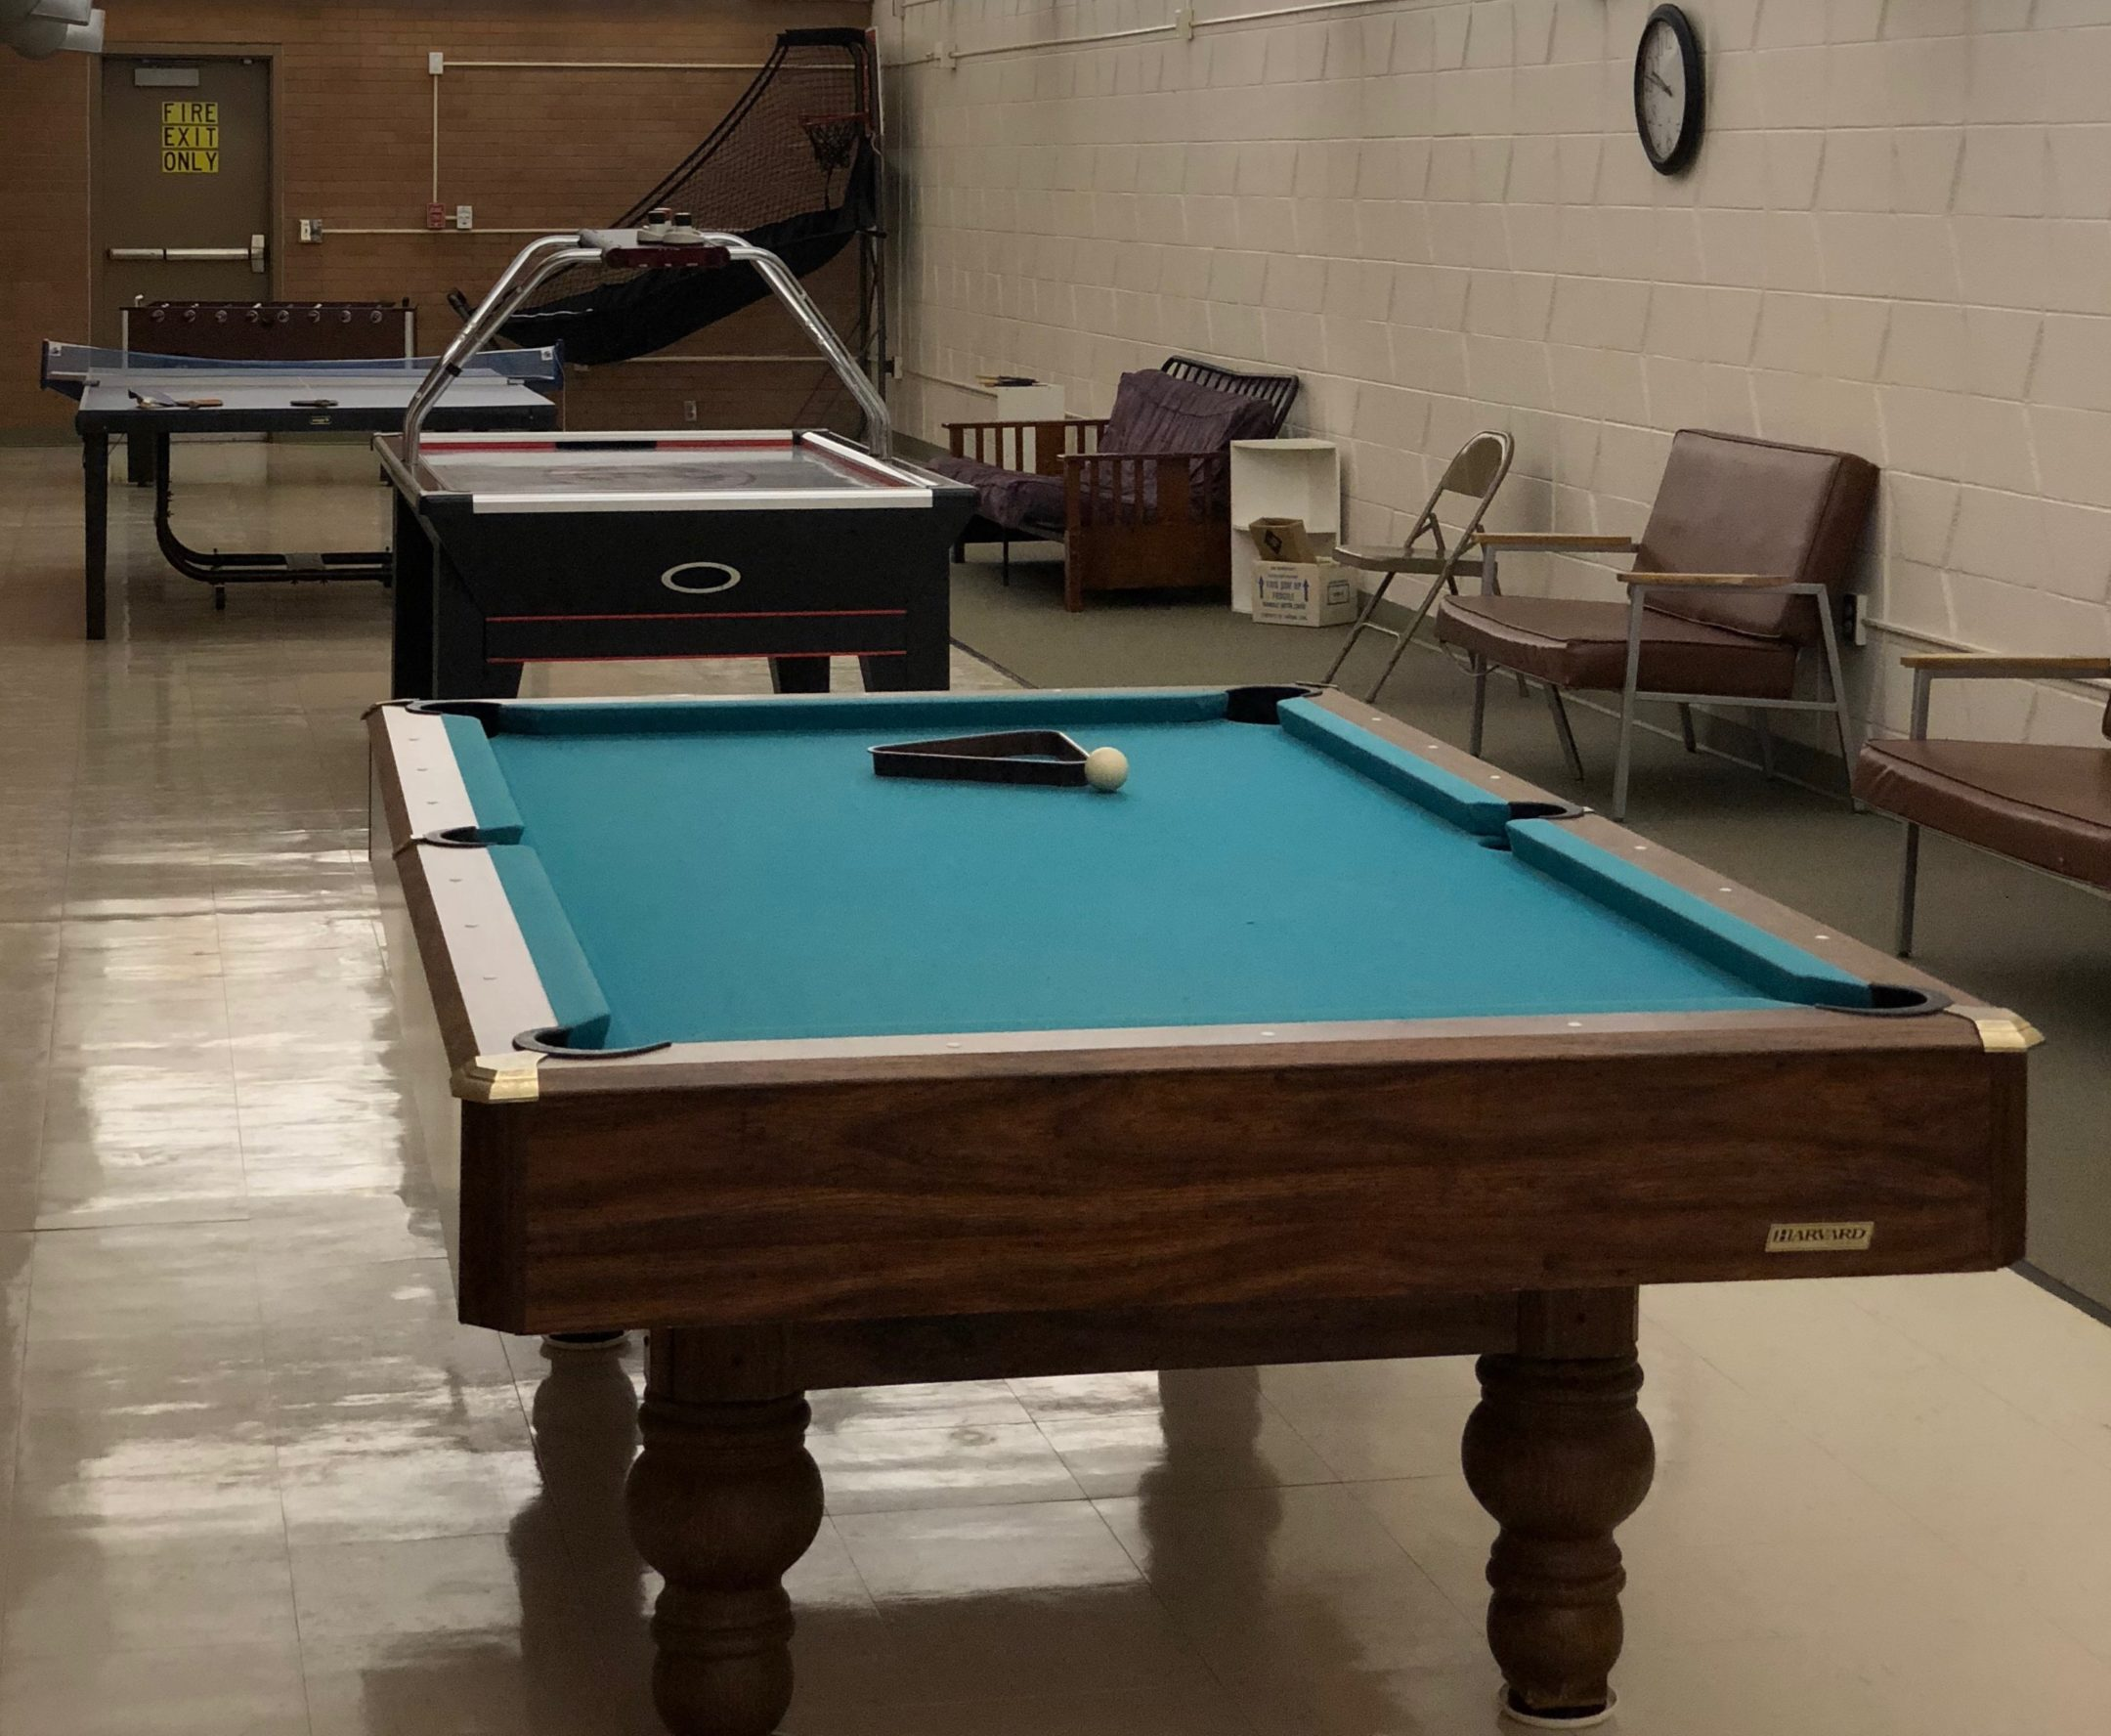 The recreation room with a pool table and air hockey table.